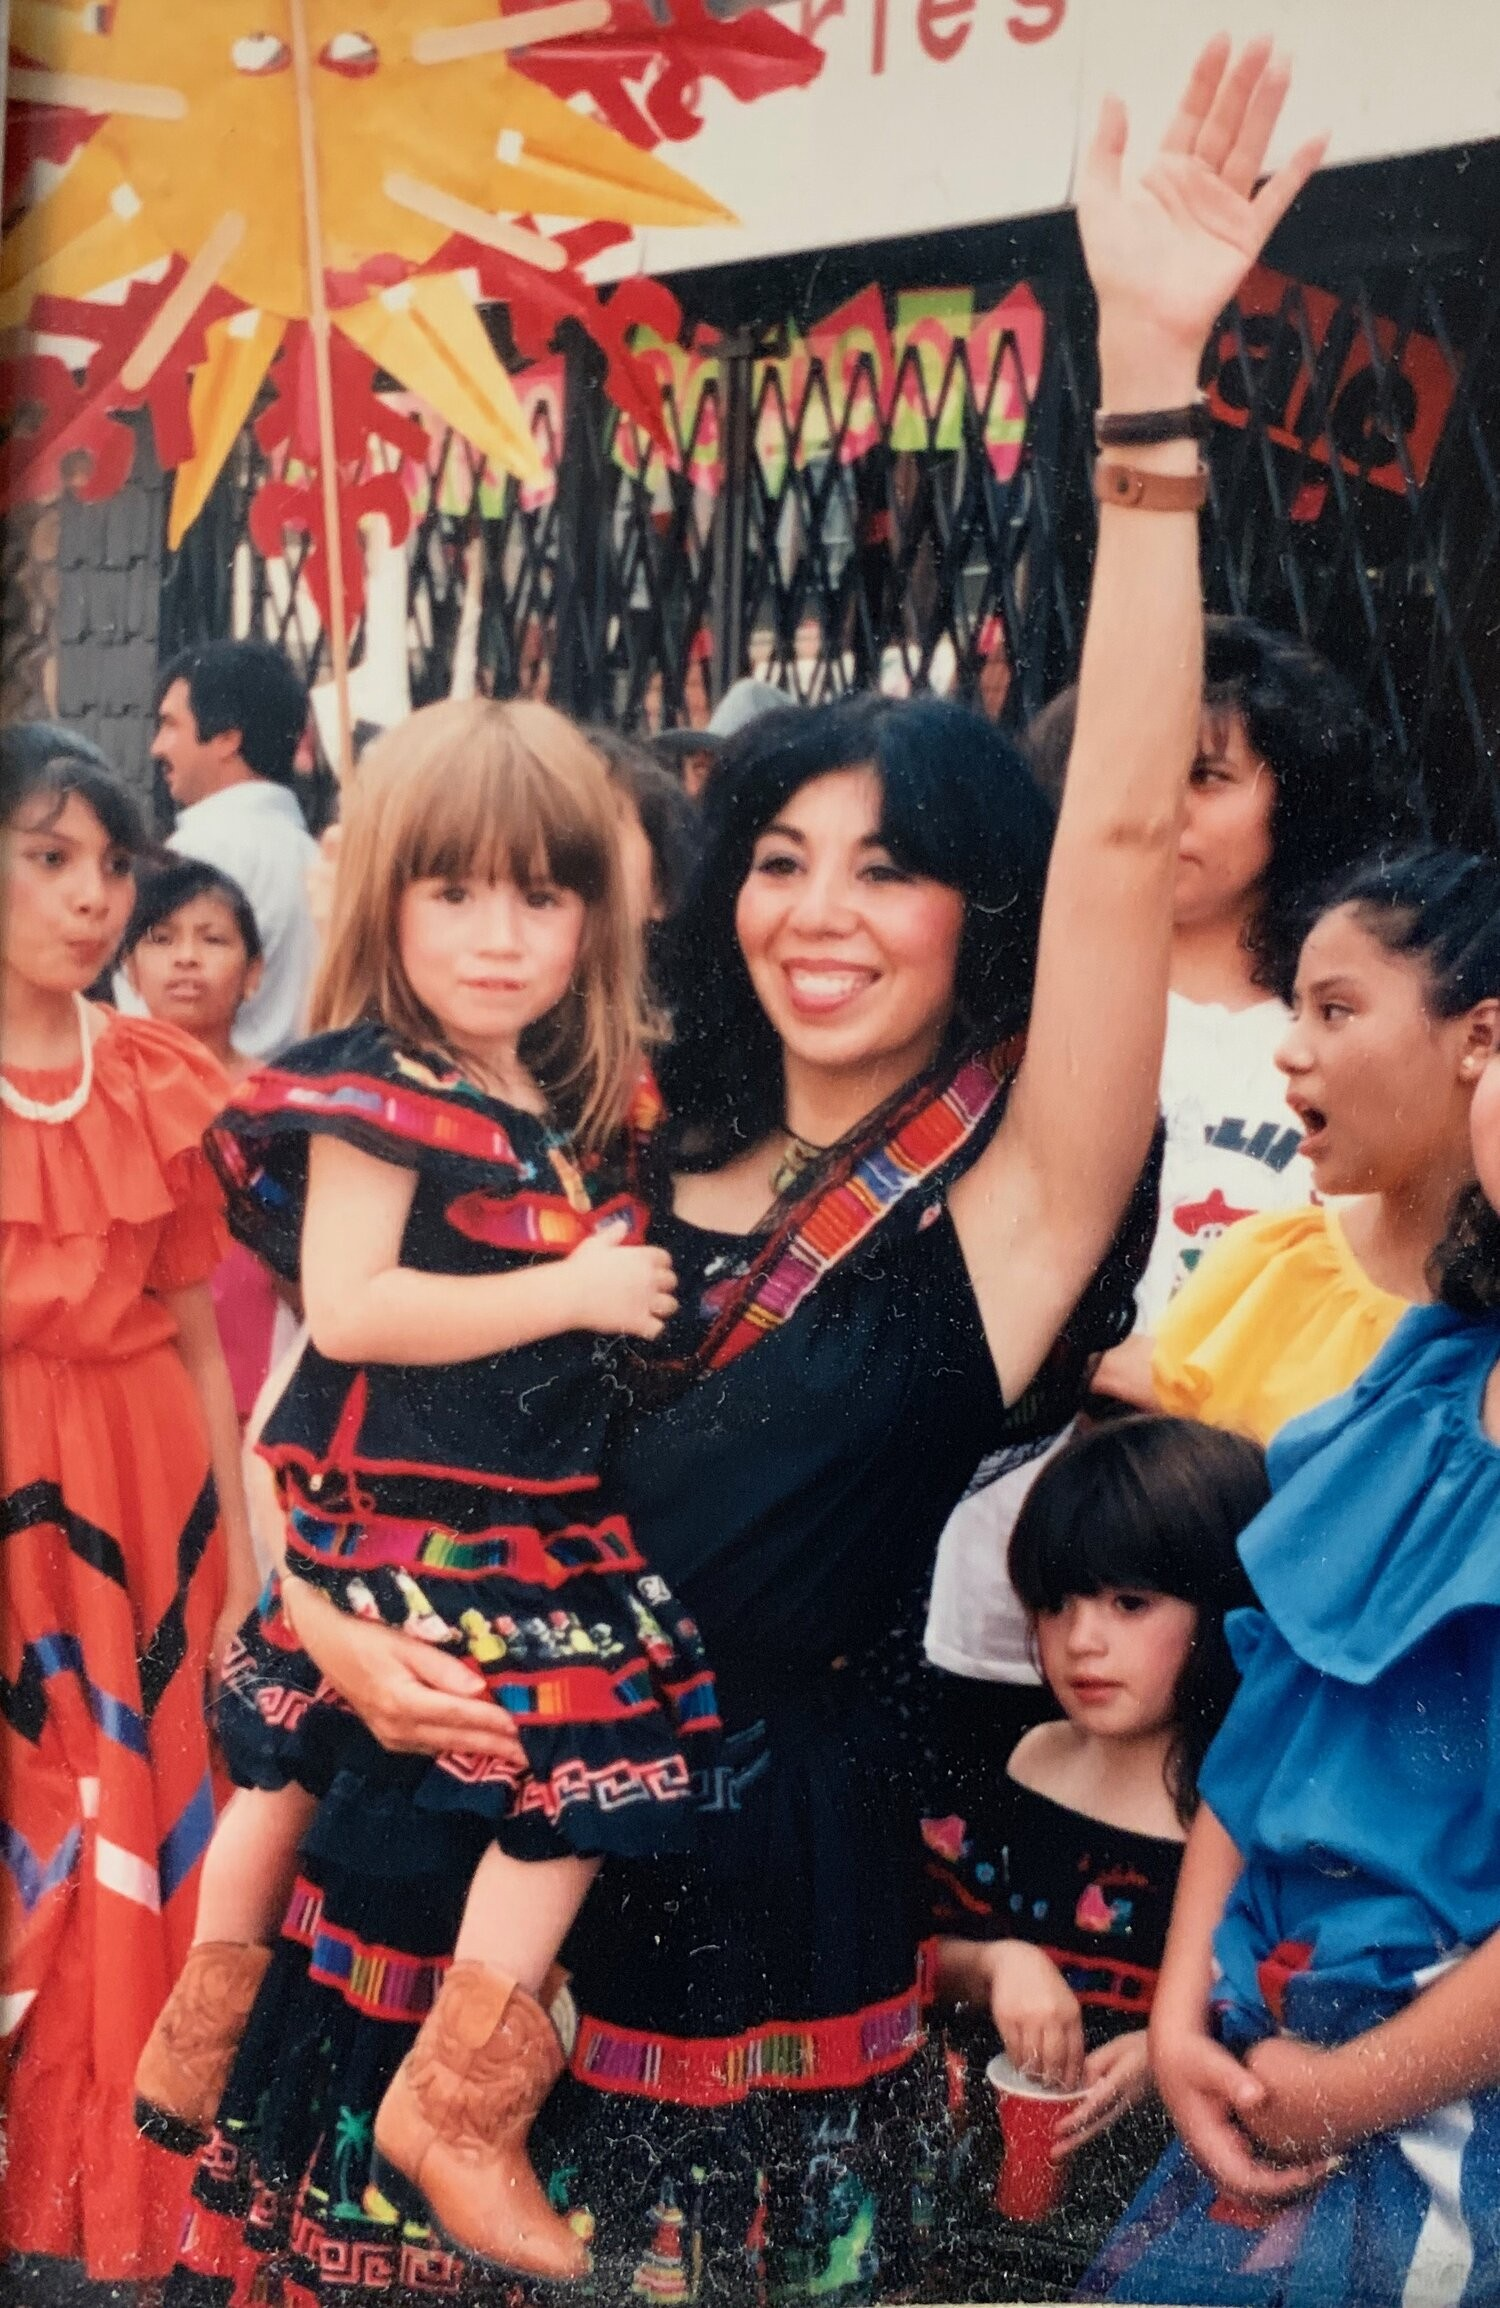 Emma Lozano holds her daughter Joline, as Tanya stands to her right